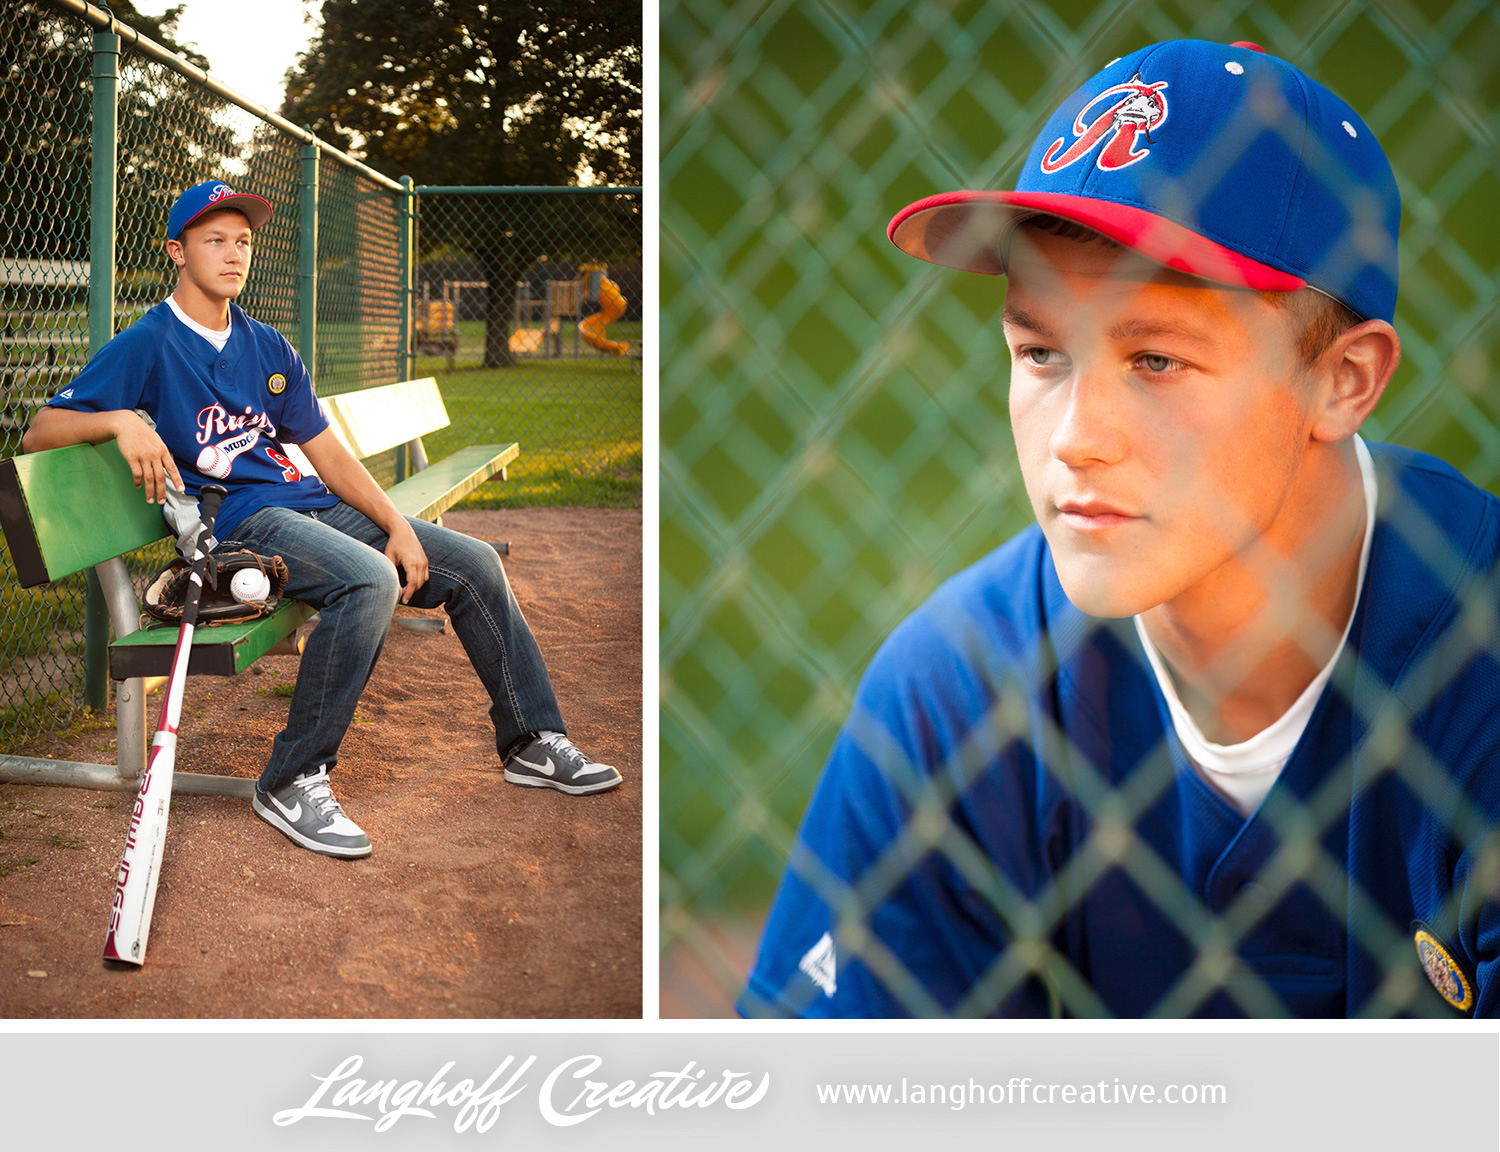 """The moment we stepped onto this baseball diamond, Ryan's persona changed. He came alive—it is obvious that Ryan feels """"at home"""" on the field."""